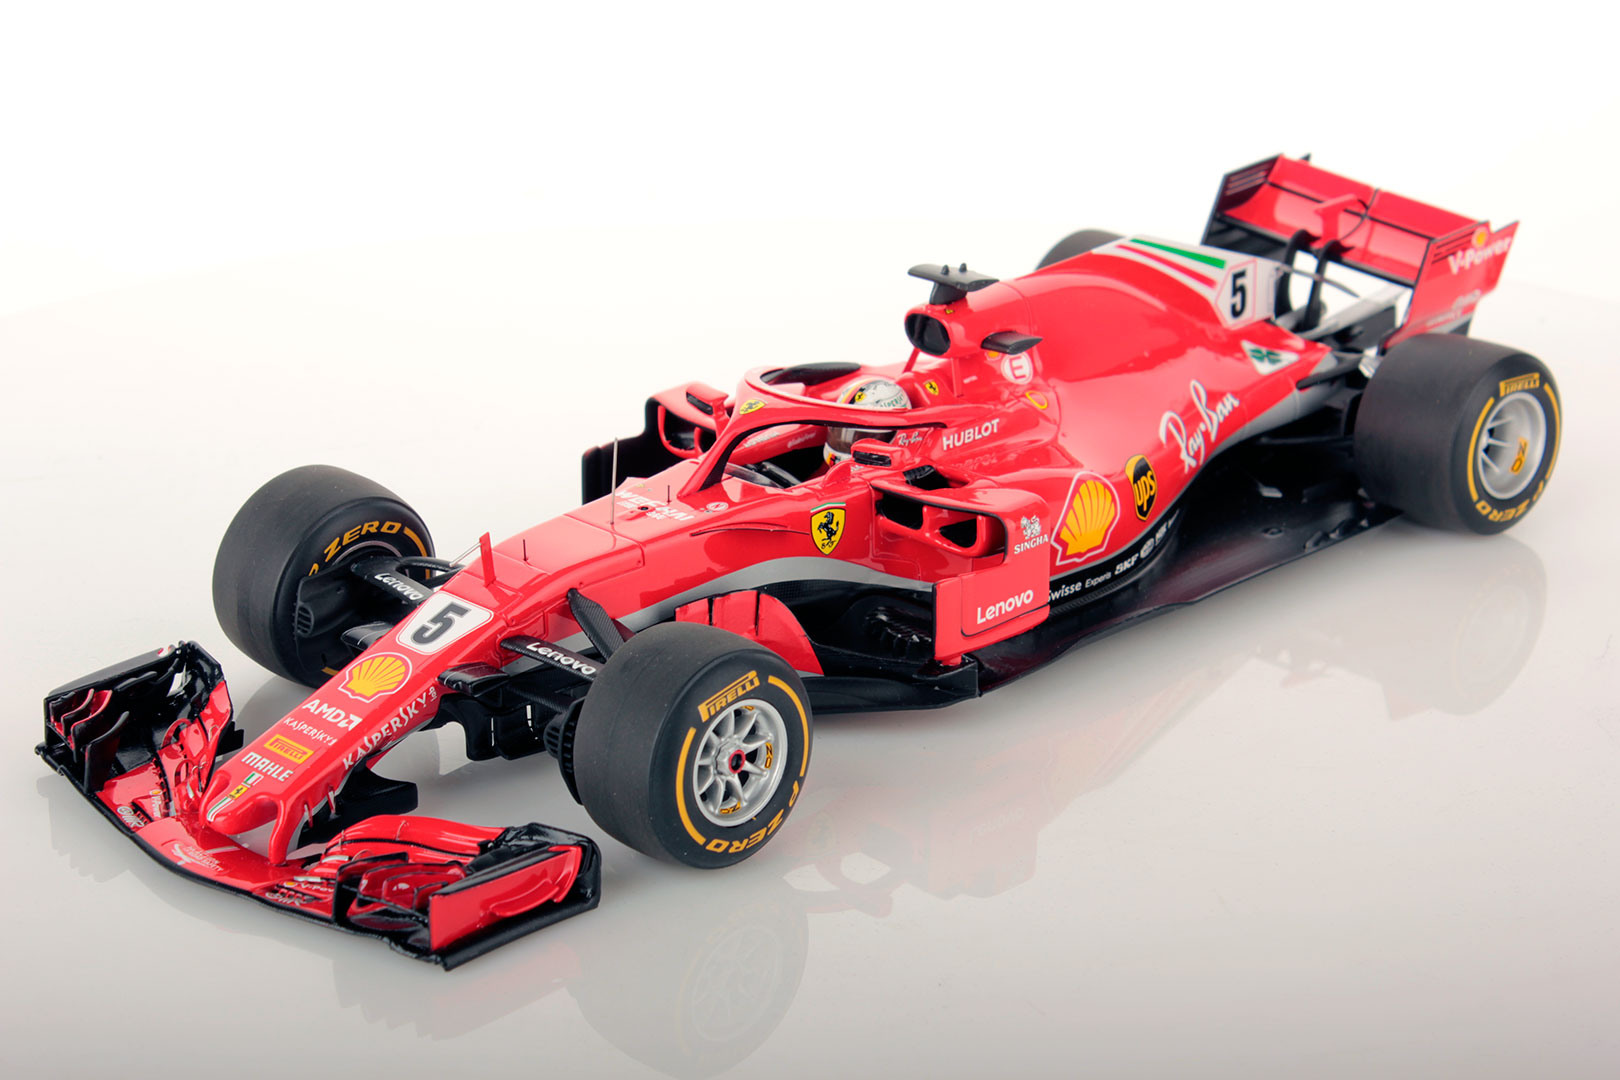 ferrari sf71h australian gp 2018 sebastian vettel winner 1 18 looksmart models. Black Bedroom Furniture Sets. Home Design Ideas